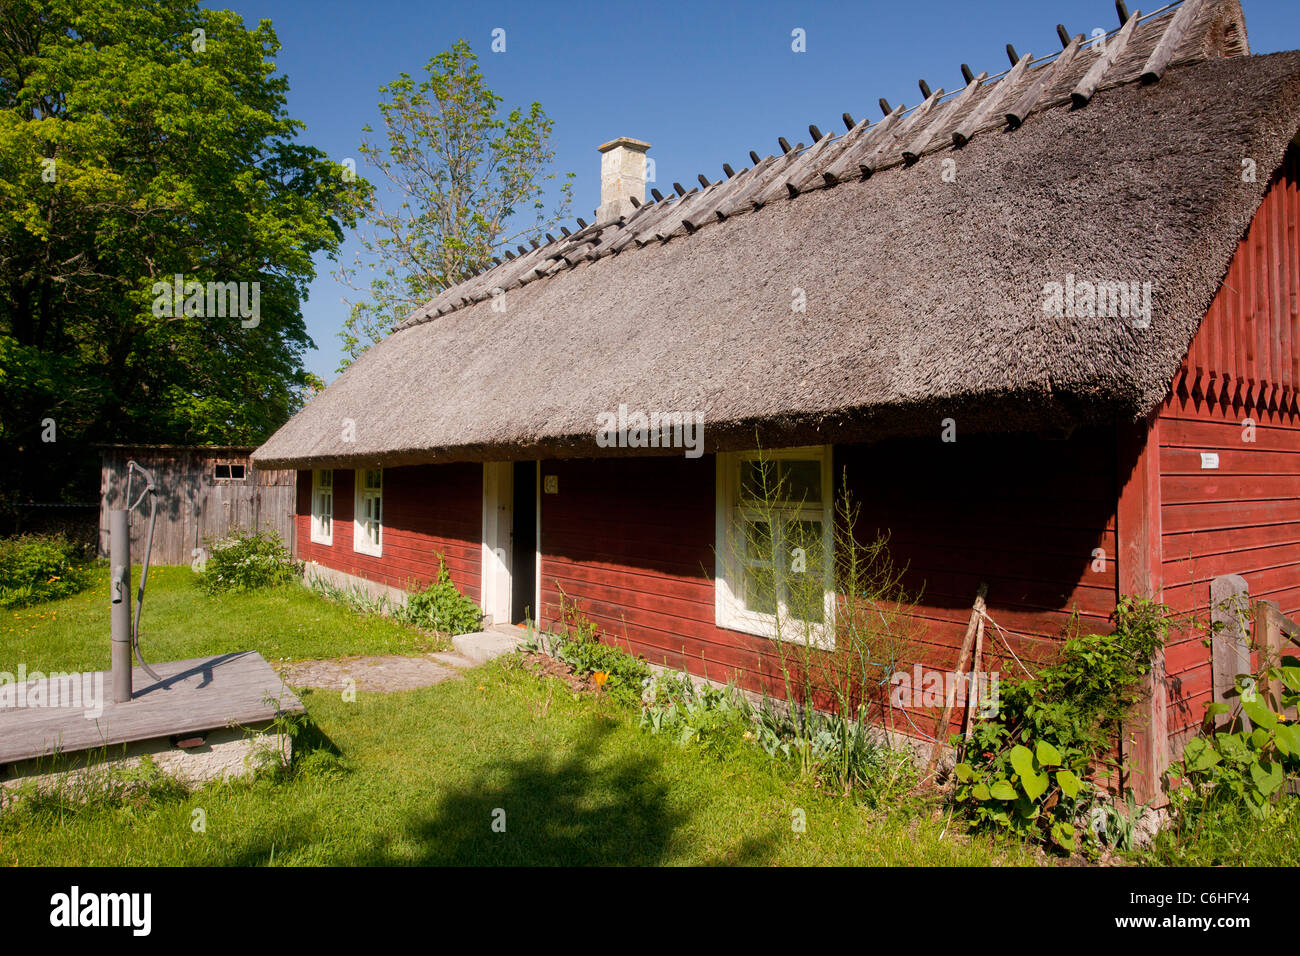 Koguva museum village, Muhu island, - best preserved village in Estonia - Estonia. - Stock Image